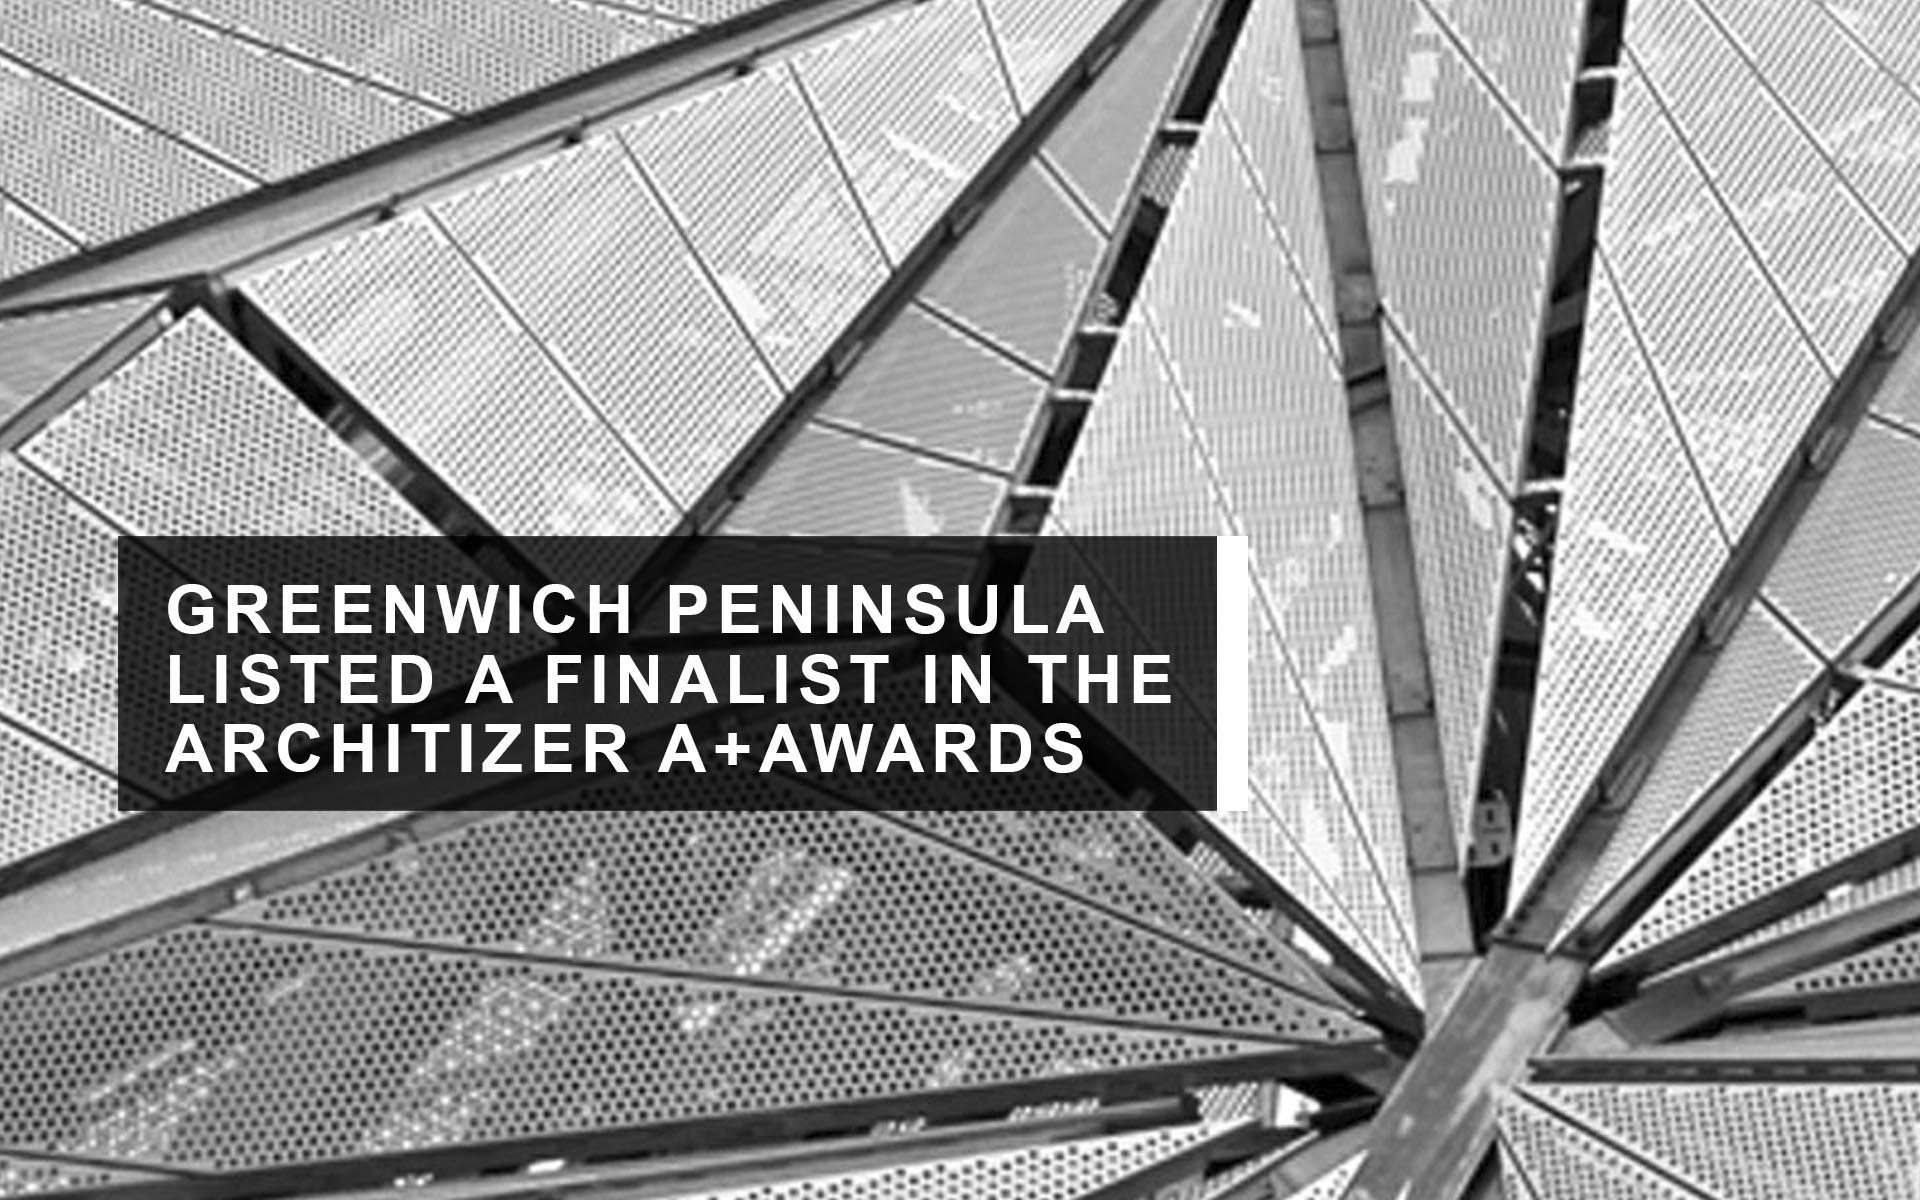 GREENWICH PENINSULA LOW CARBON ENERGY CENTRE LISTED AS A FINALIST IN THE ARCHITIZER A+AWARDS